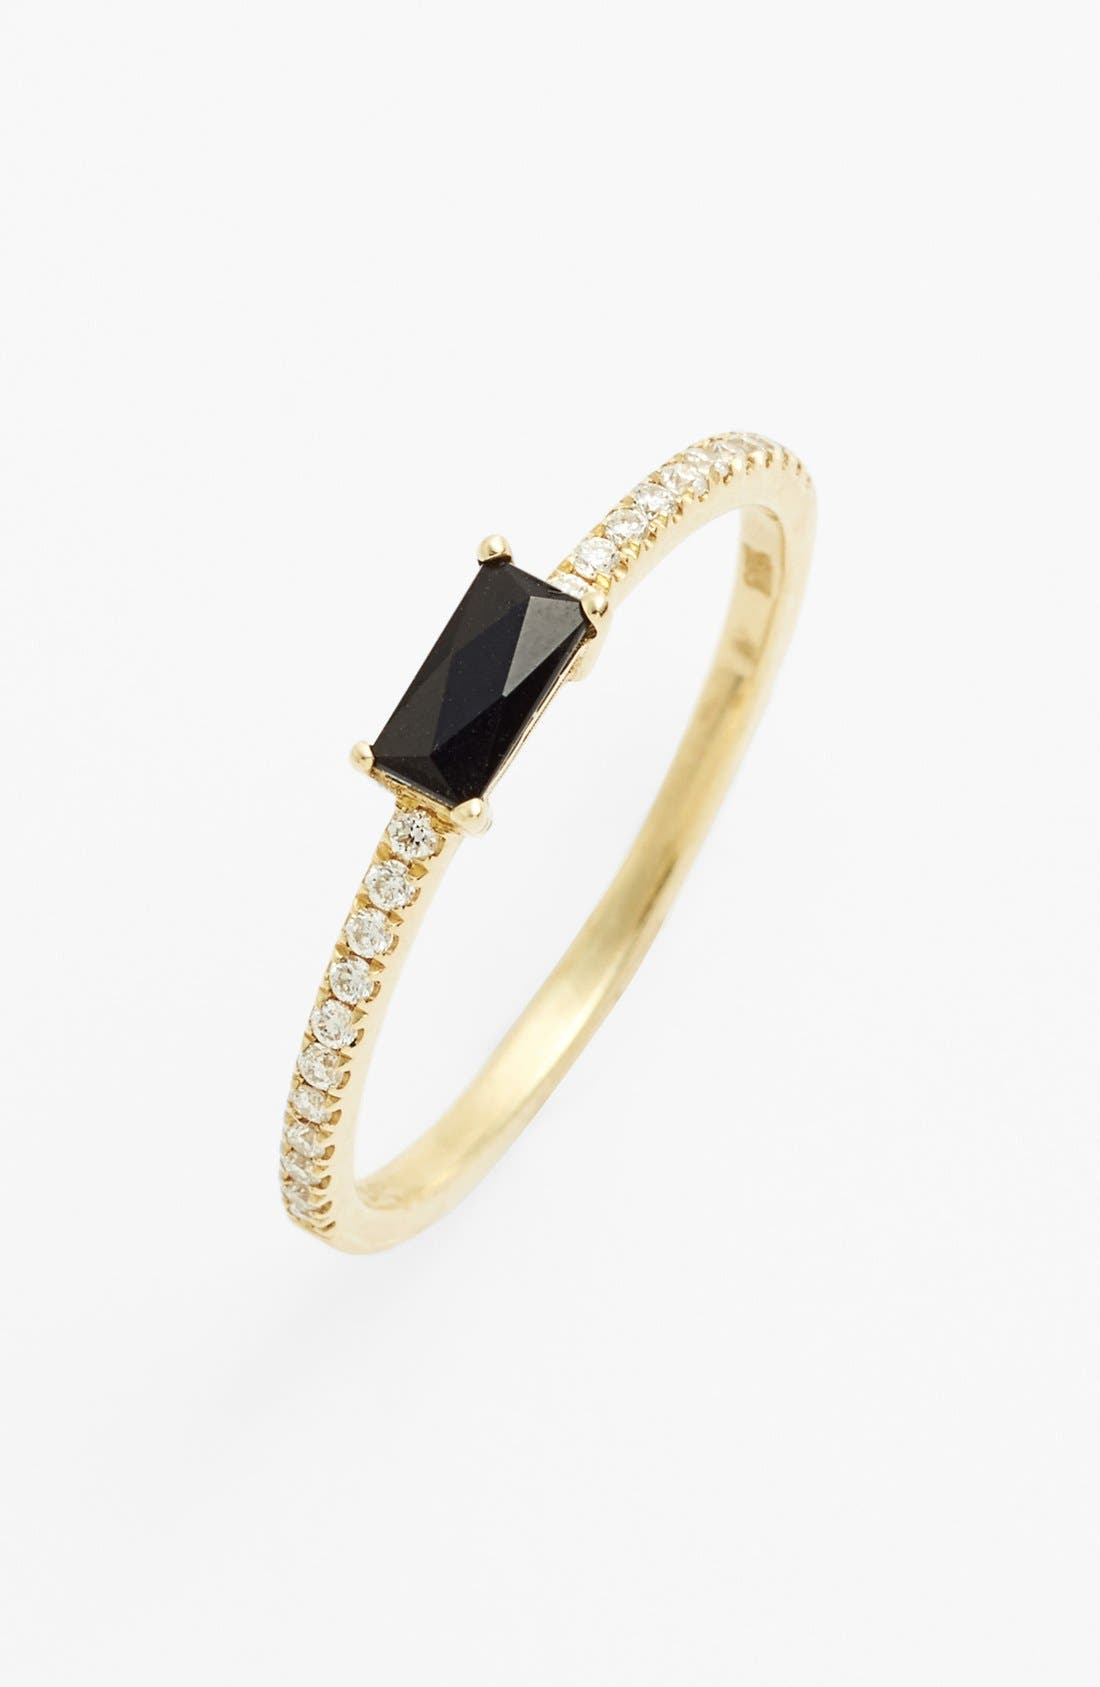 Main Image - Bony Levy Stackable Black Onyx Baguette & Diamond Ring (Nordstrom Exclusive)